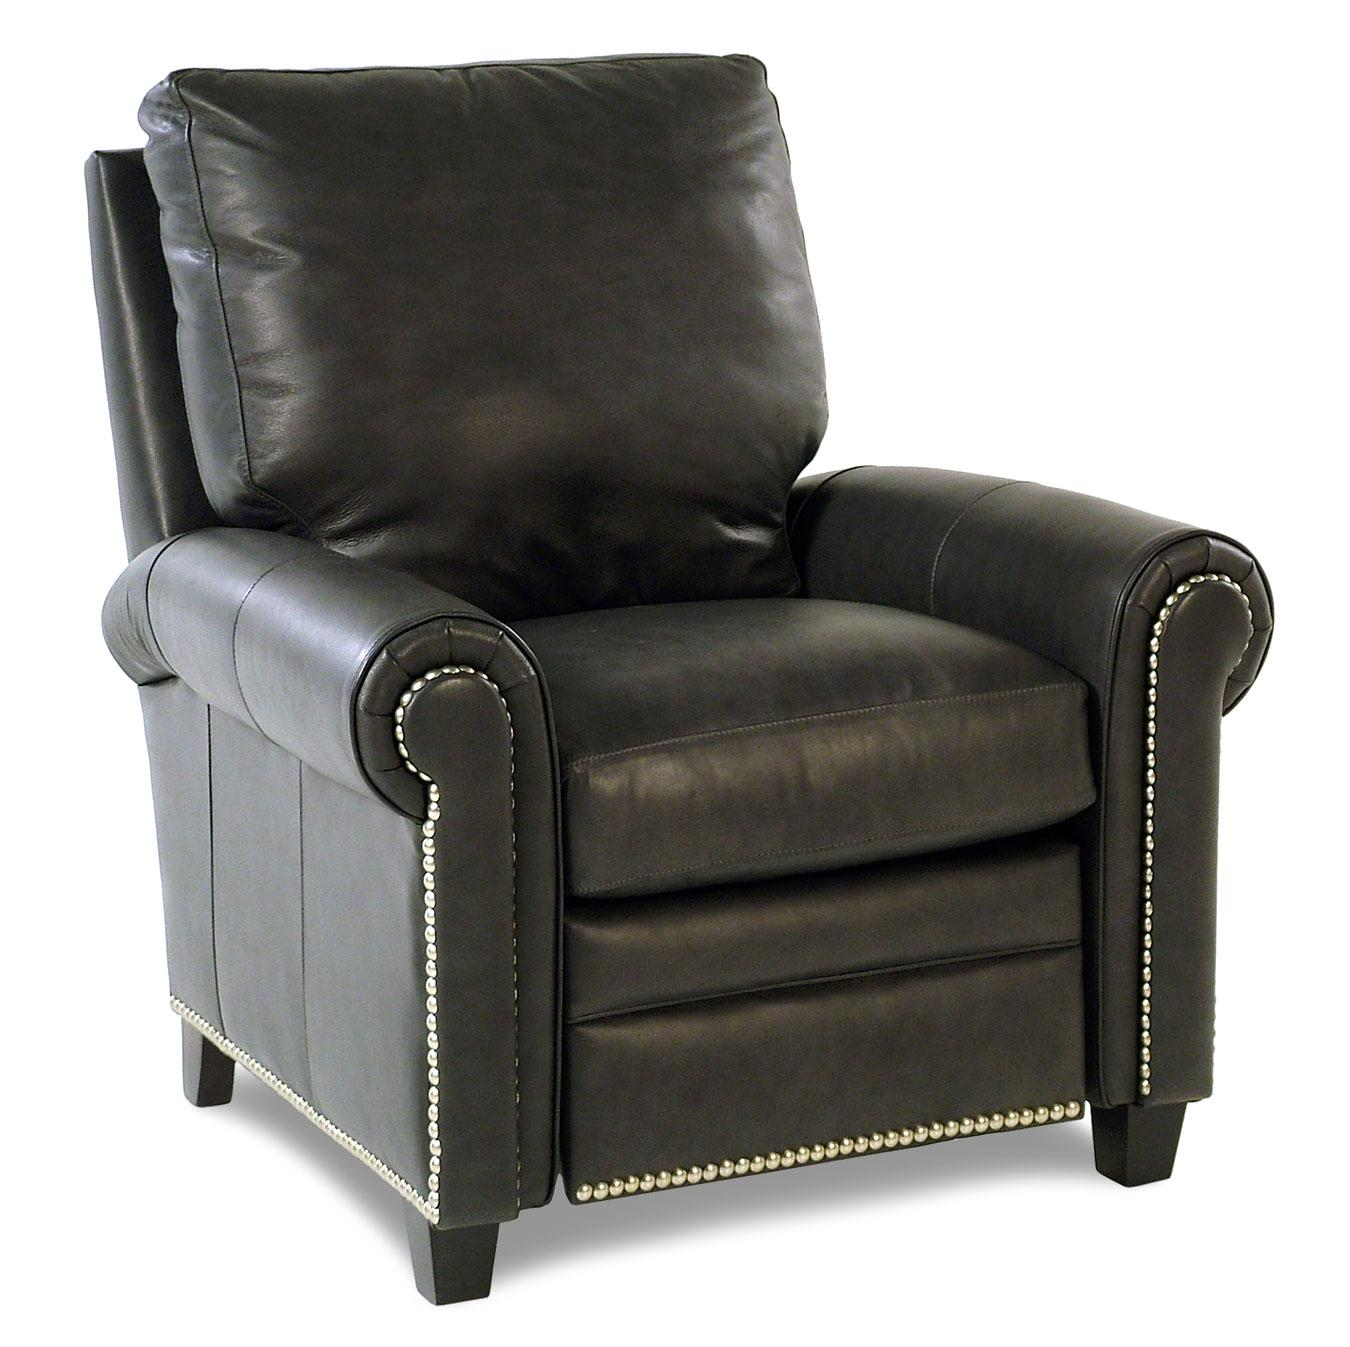 Bradington Young So You Leather High Leg Recliner - Item Number: 3171